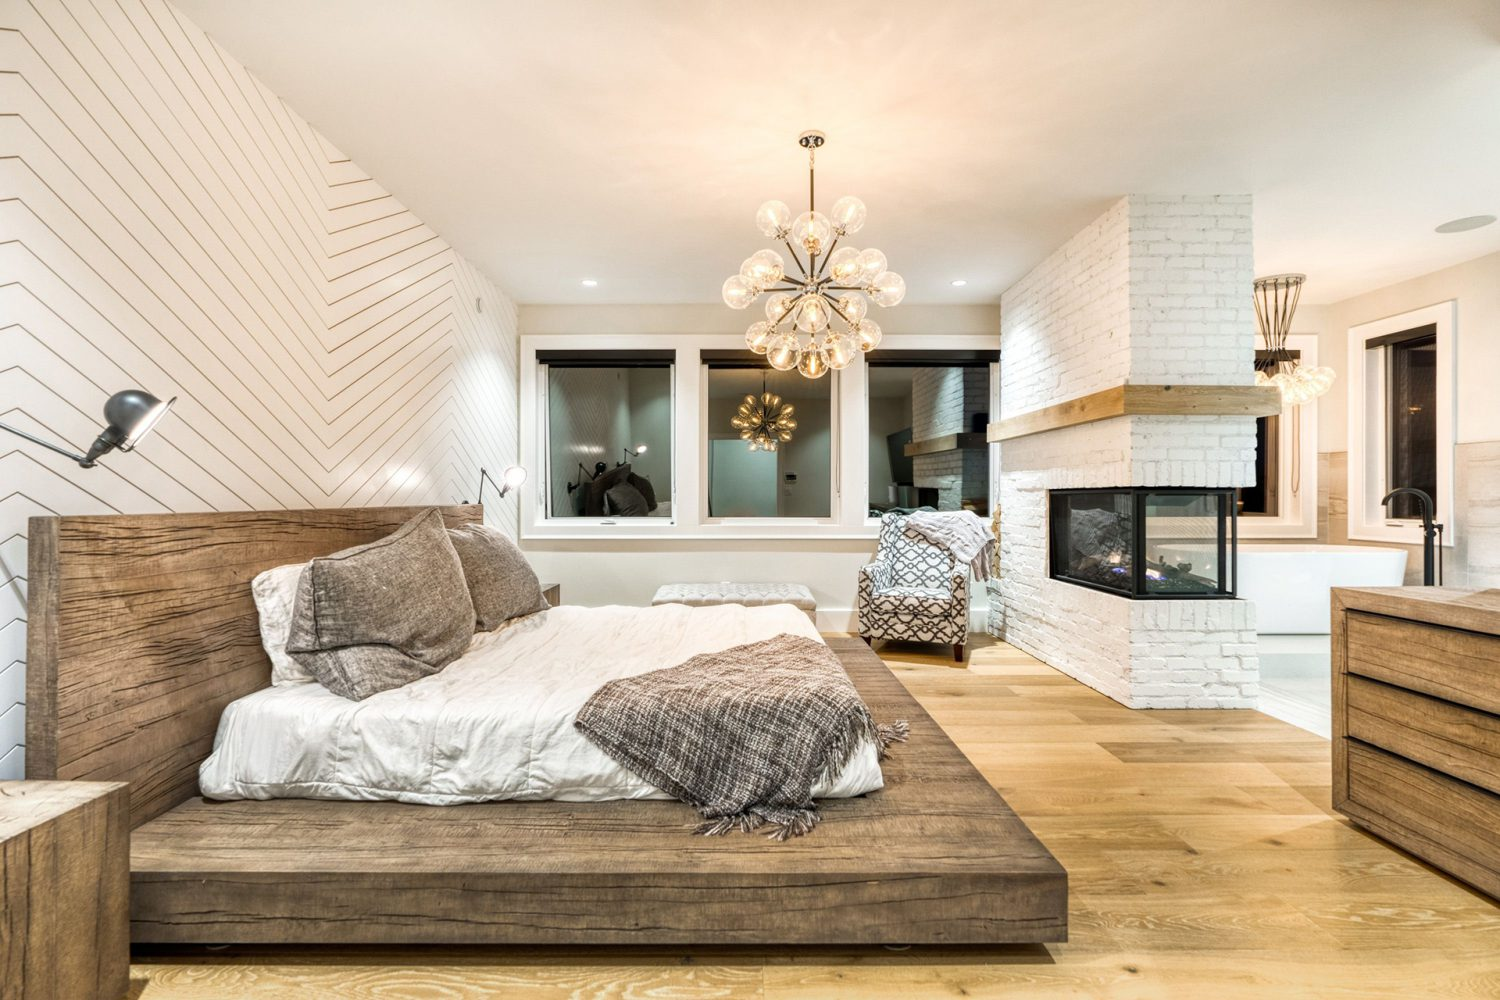 Custom bedroom with king bed, chandelier, fireplace and large windows by Midland Premium Properties in the Greater Vancouver area.